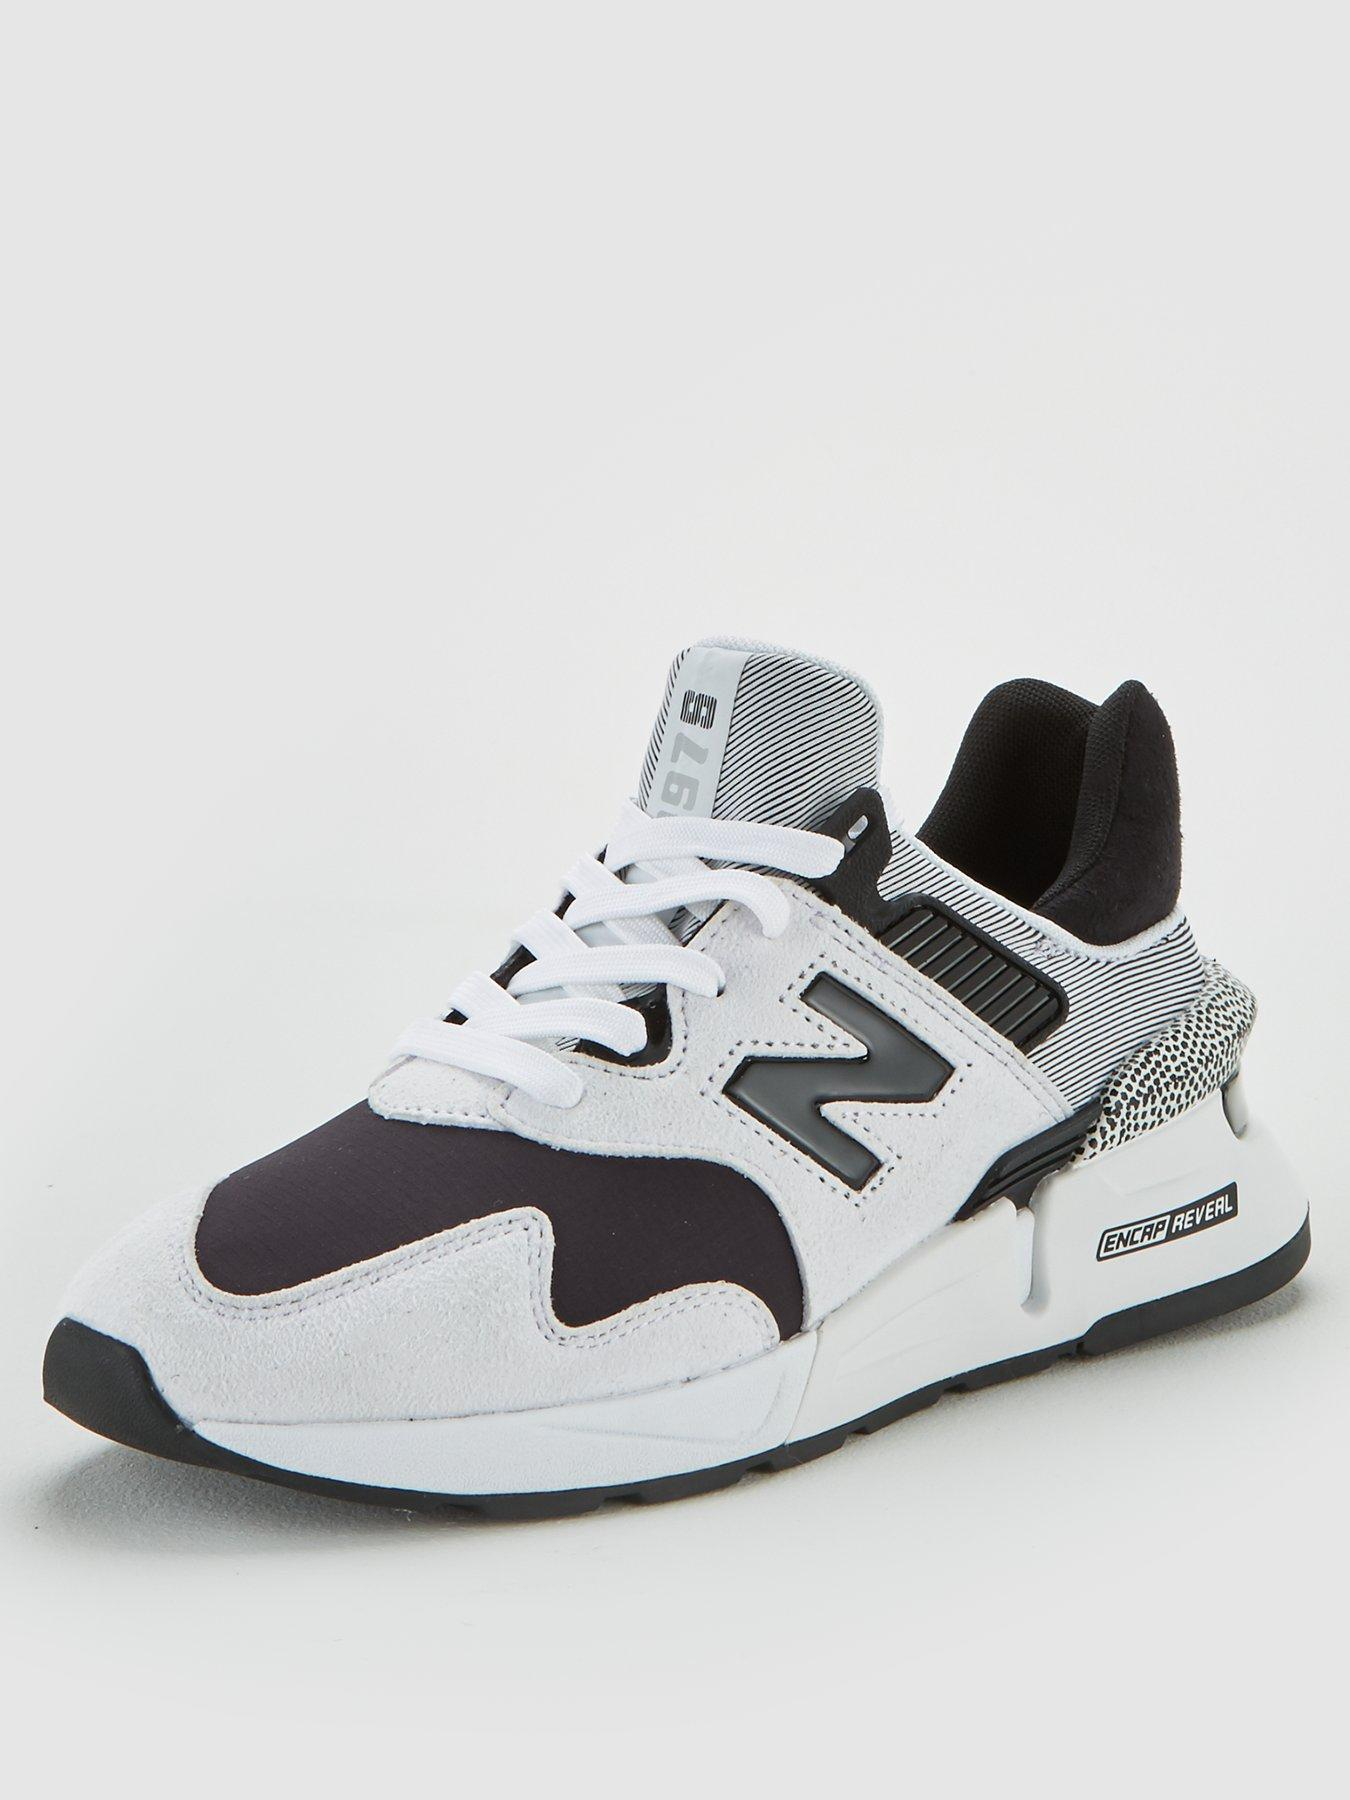 New Balance Trainers | New Balance Store Online at Very.co.uk